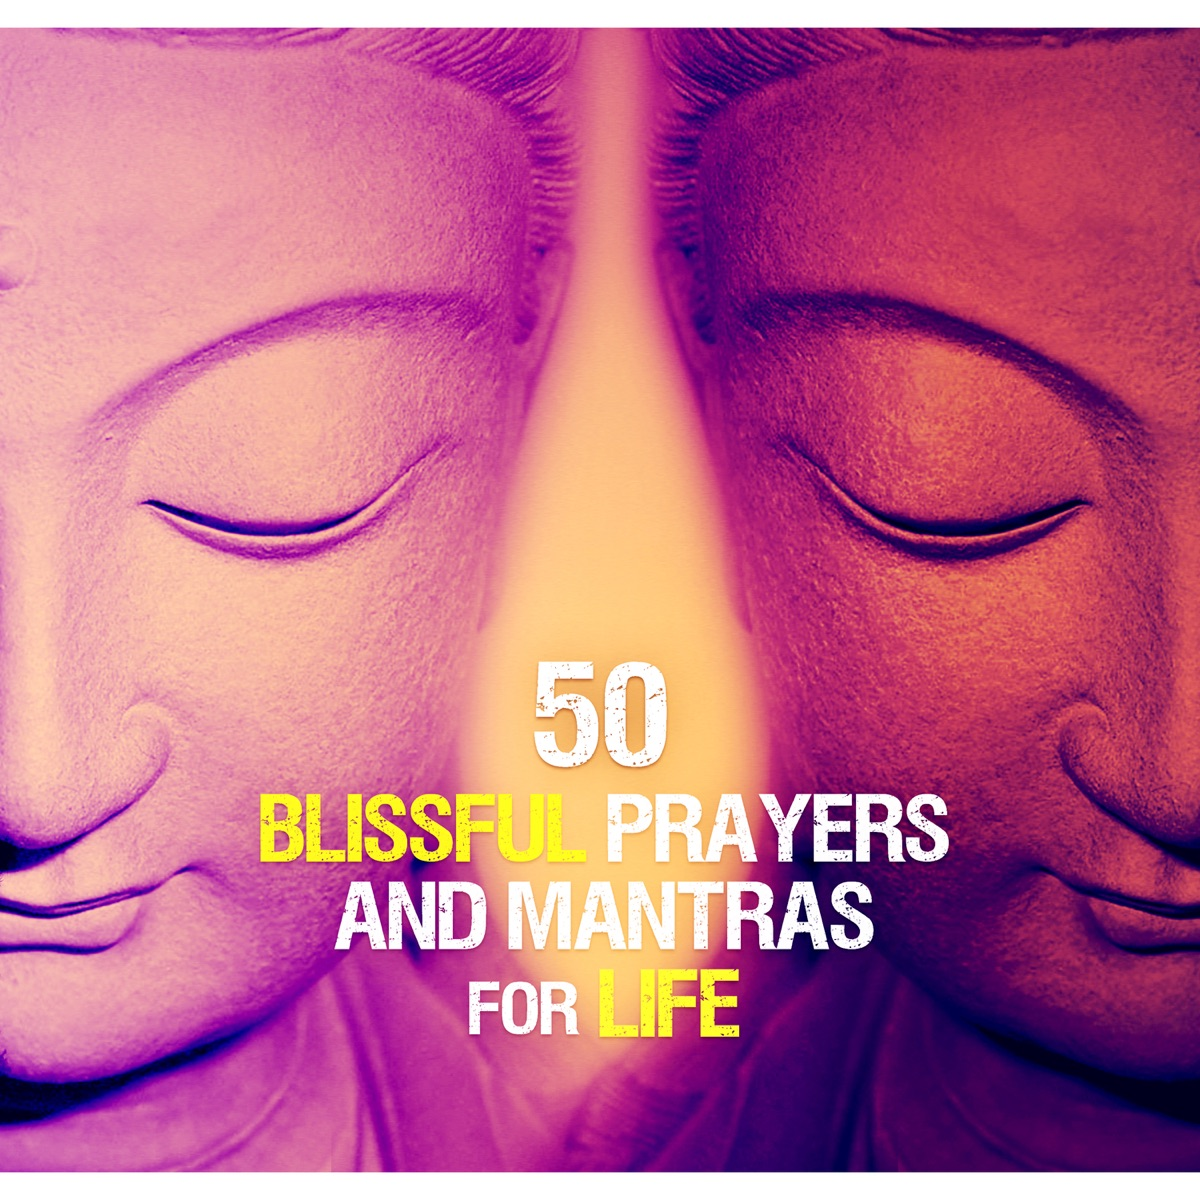 50 Blissful Prayers and Mantras for Life: Spiritual Music